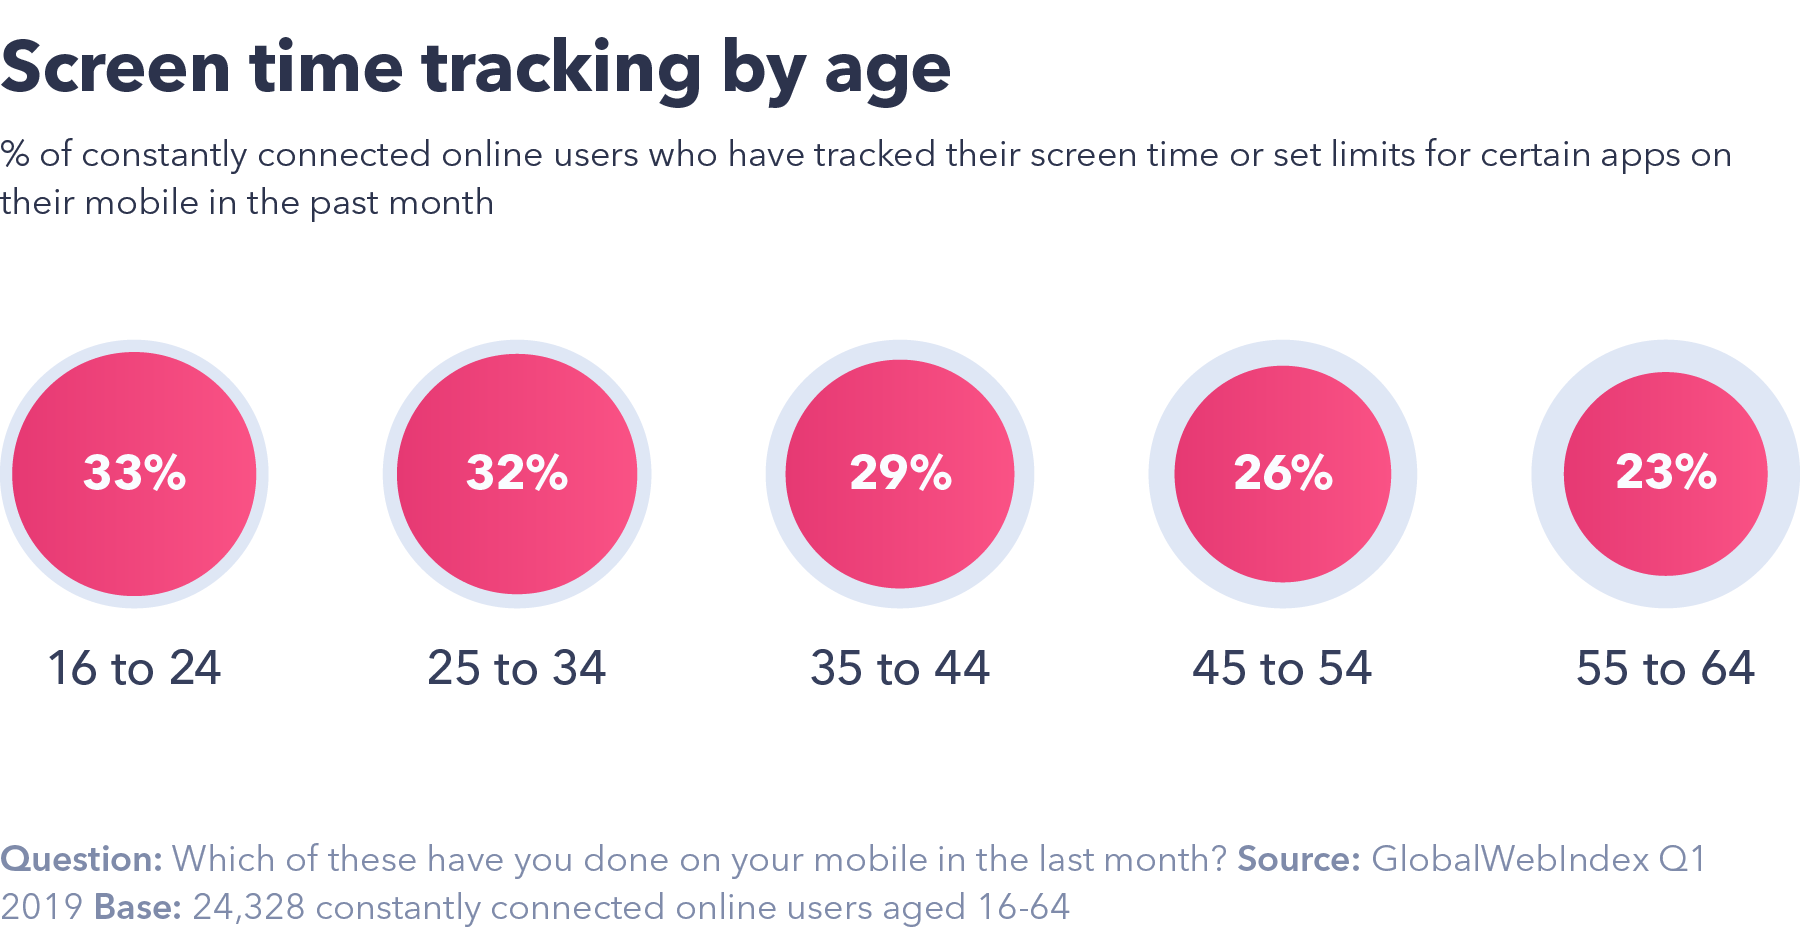 Screen time tracking by age